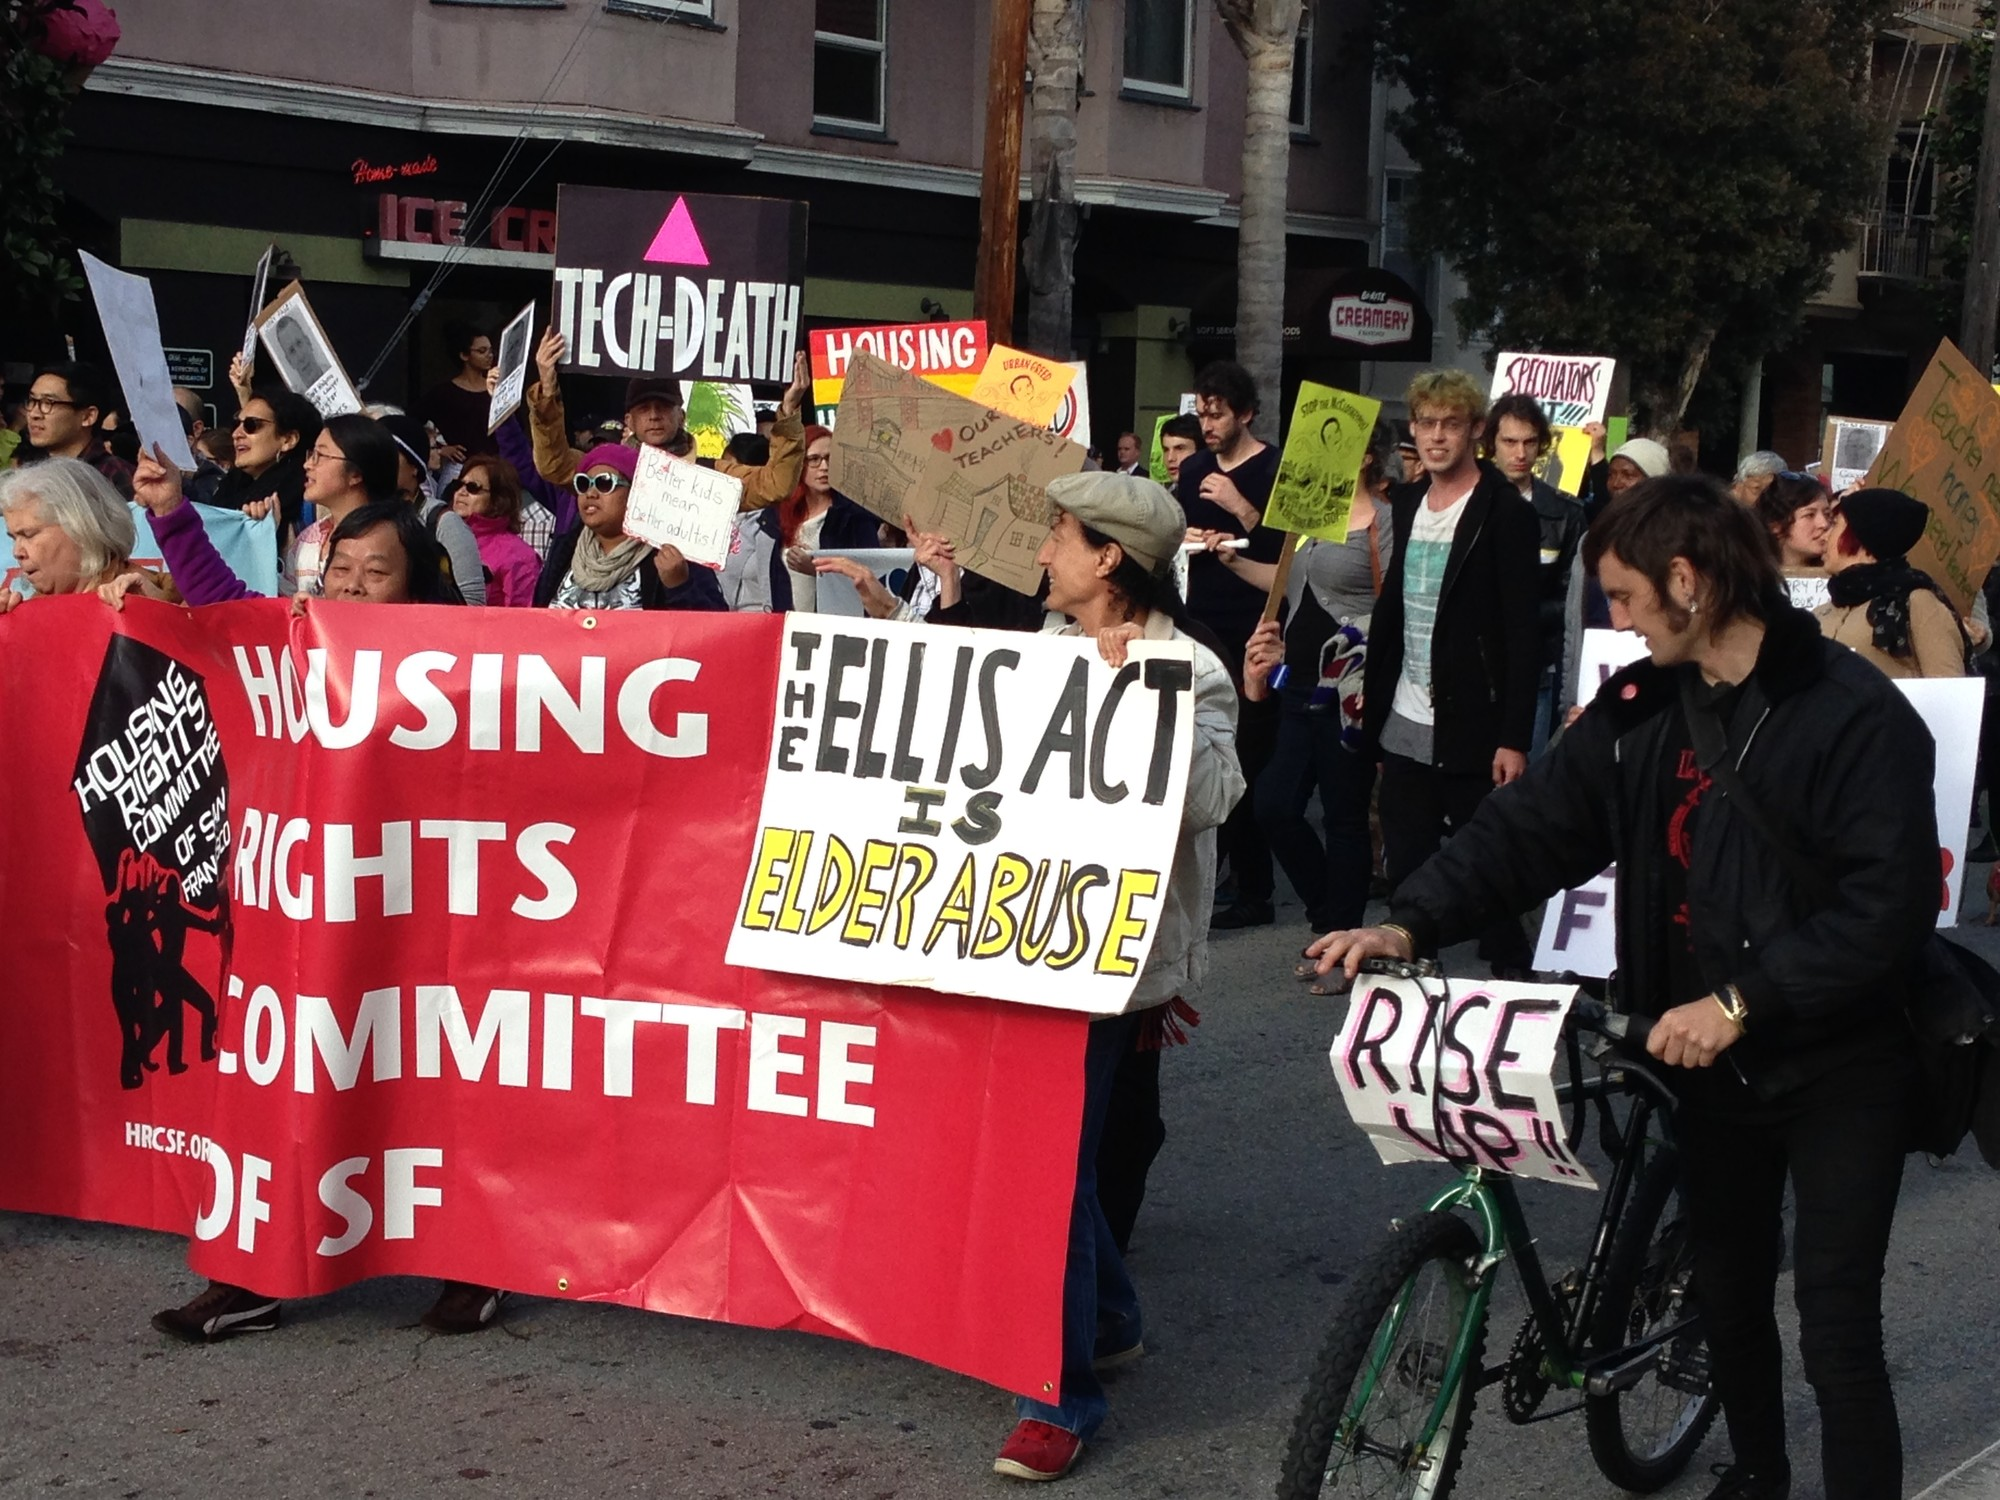 Tenant Rights groups protest evictions outside the San Francisco headquarters of a real estate firm in December 2013. (PeterLollo/KQED)